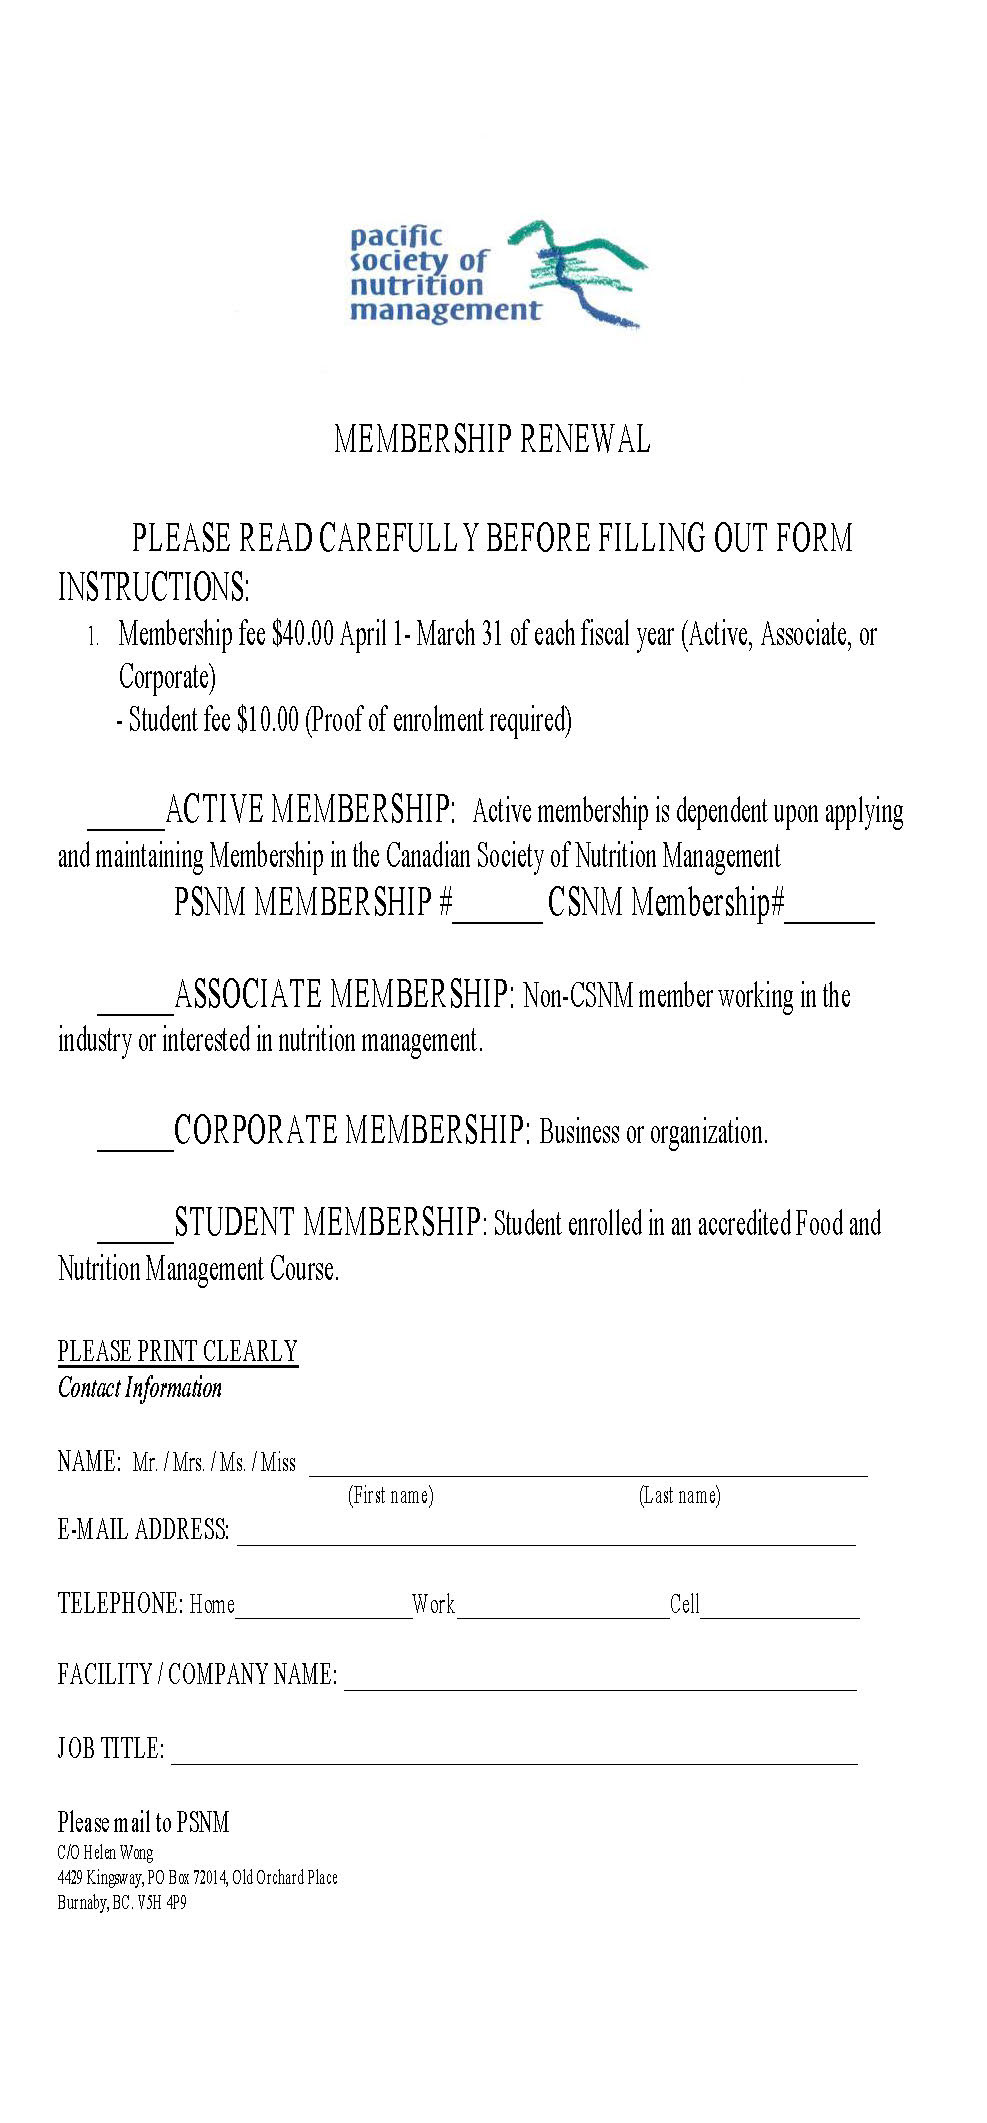 PSNM's original membership form